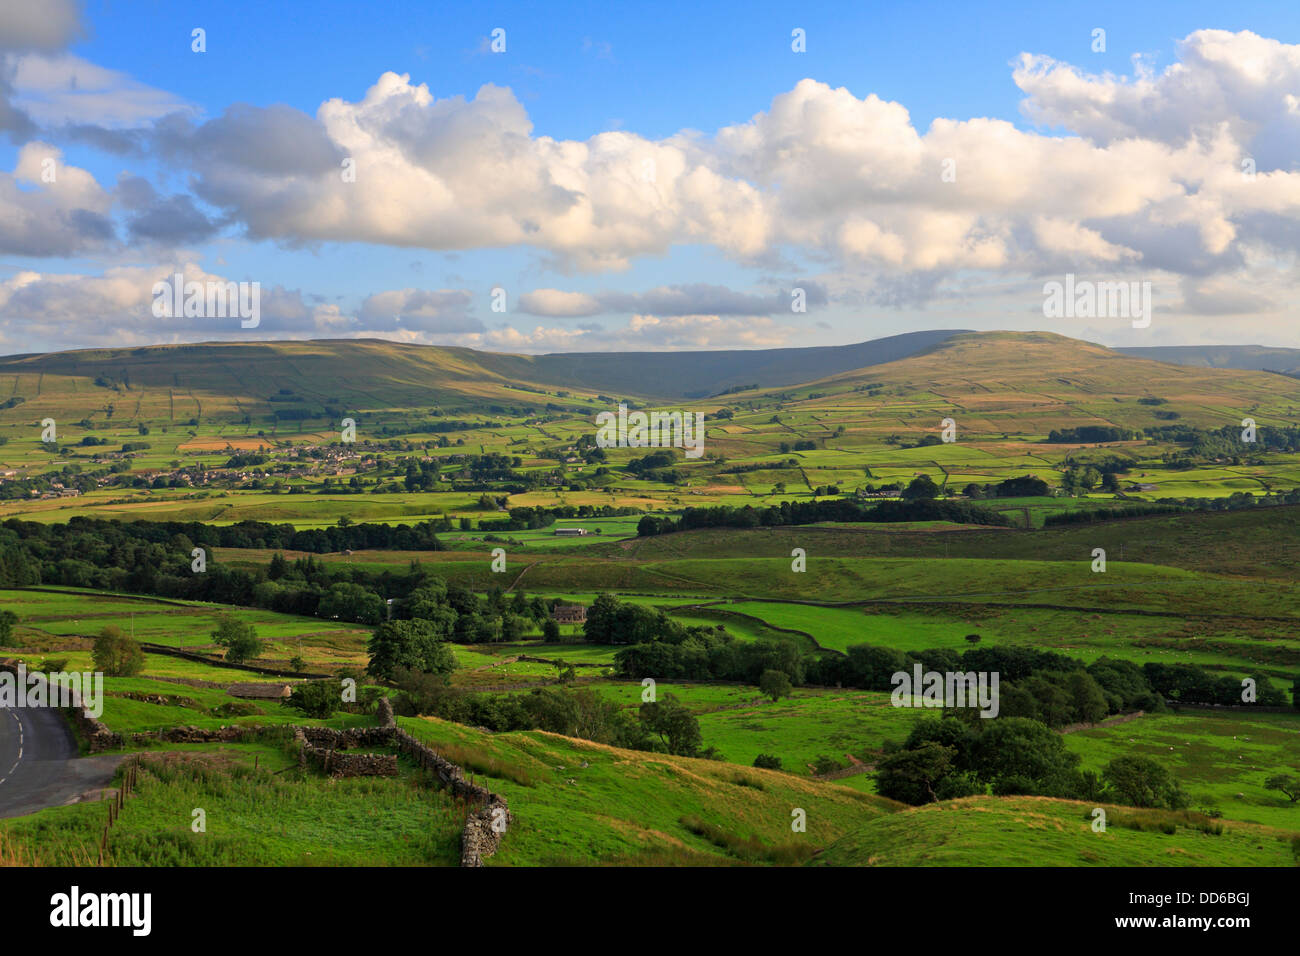 Hawes and Gayle below Dodd Fell and Burtersett High Pastures in Wensleydale, North Yorkshire, Yorkshire Dales National - Stock Image